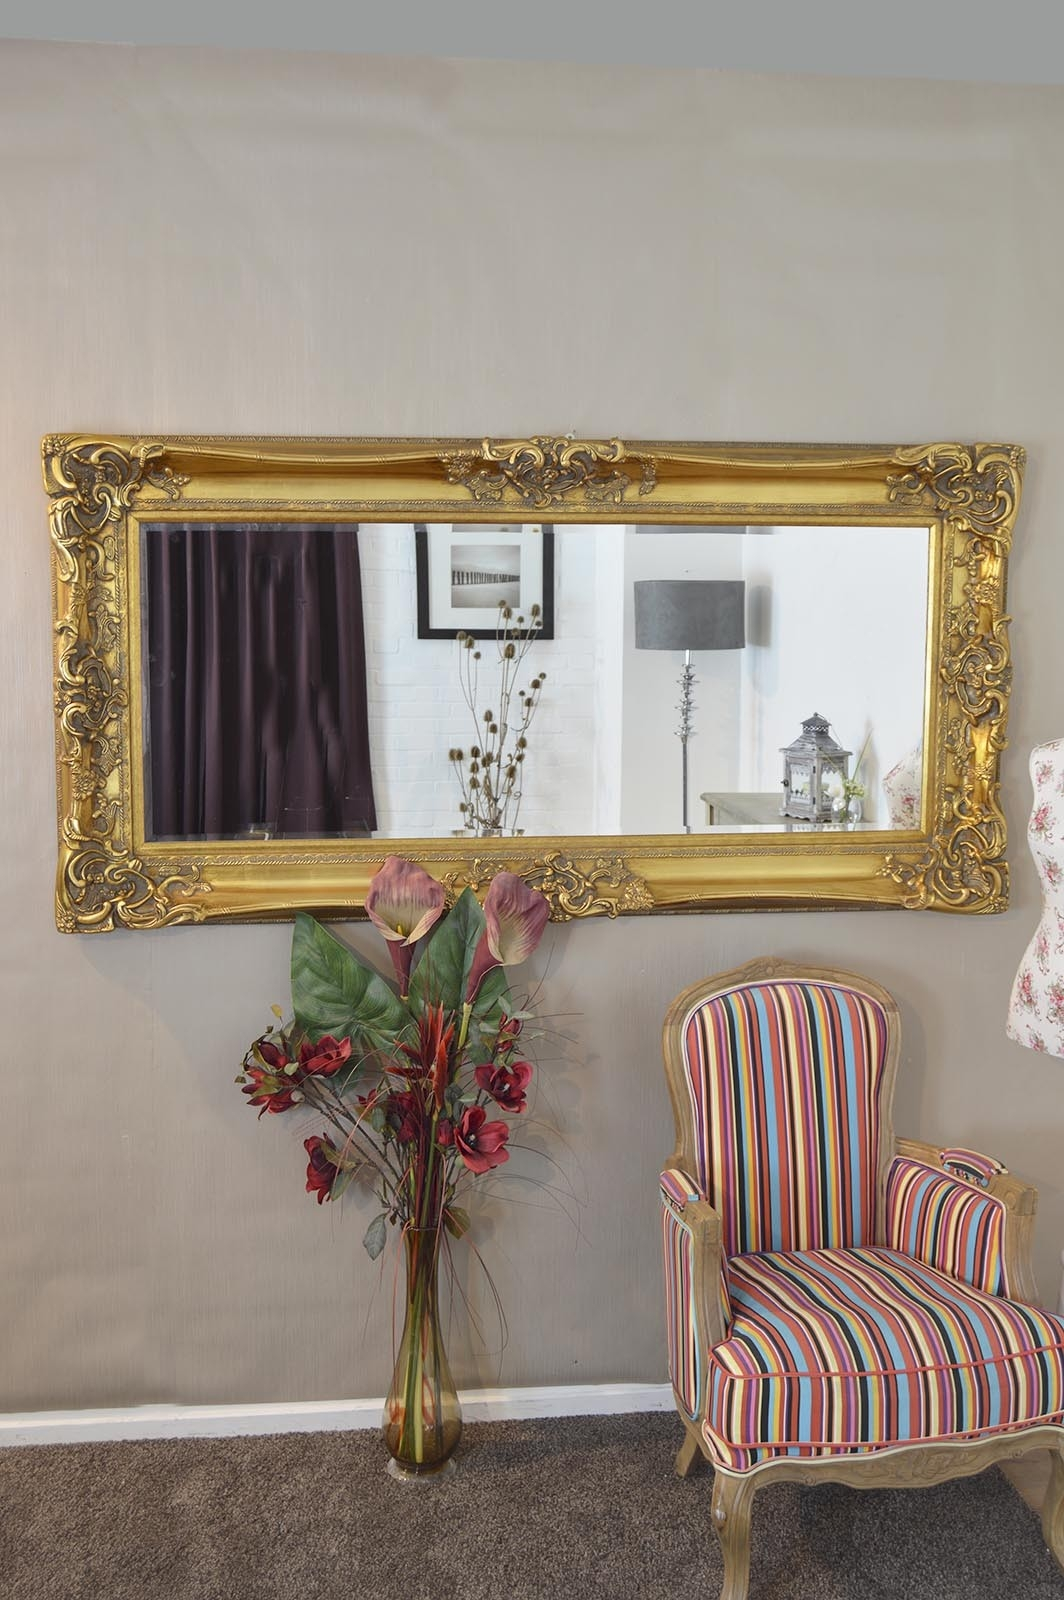 Frame Gold Antique Shab Chic Ornate Wall Mirror 6ft X 3ft 183 X Within Gold Shabby Chic Mirror (Image 7 of 15)